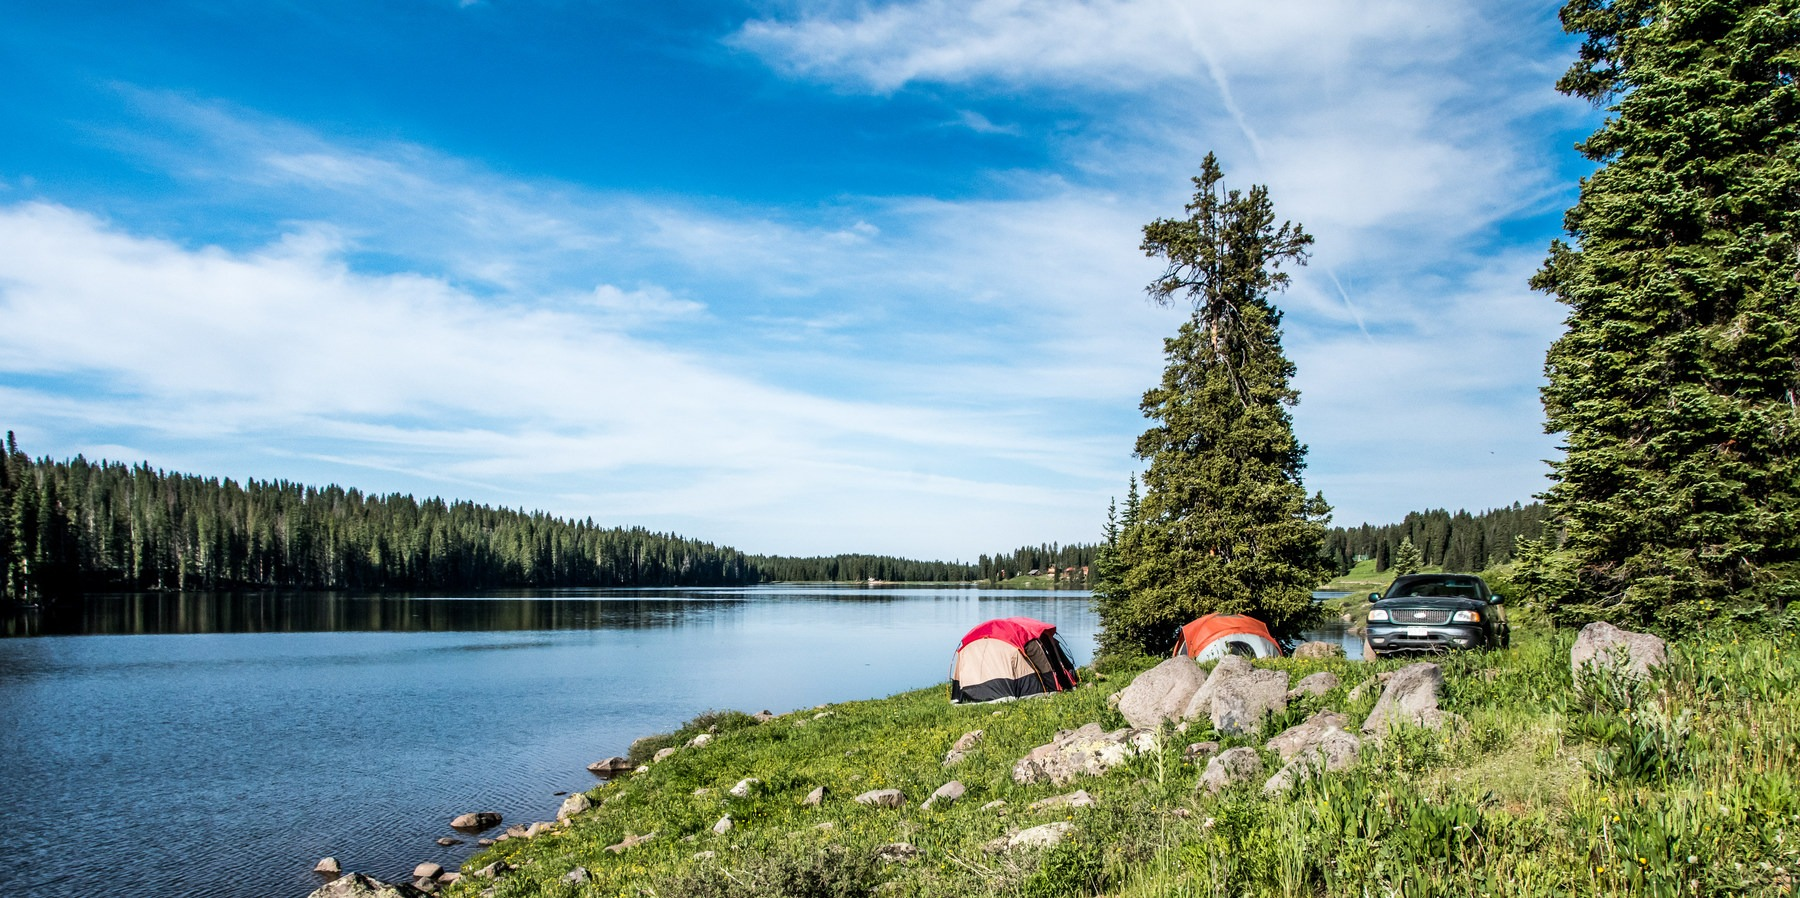 Dispersed Camping On Public Lands Outdoor Project